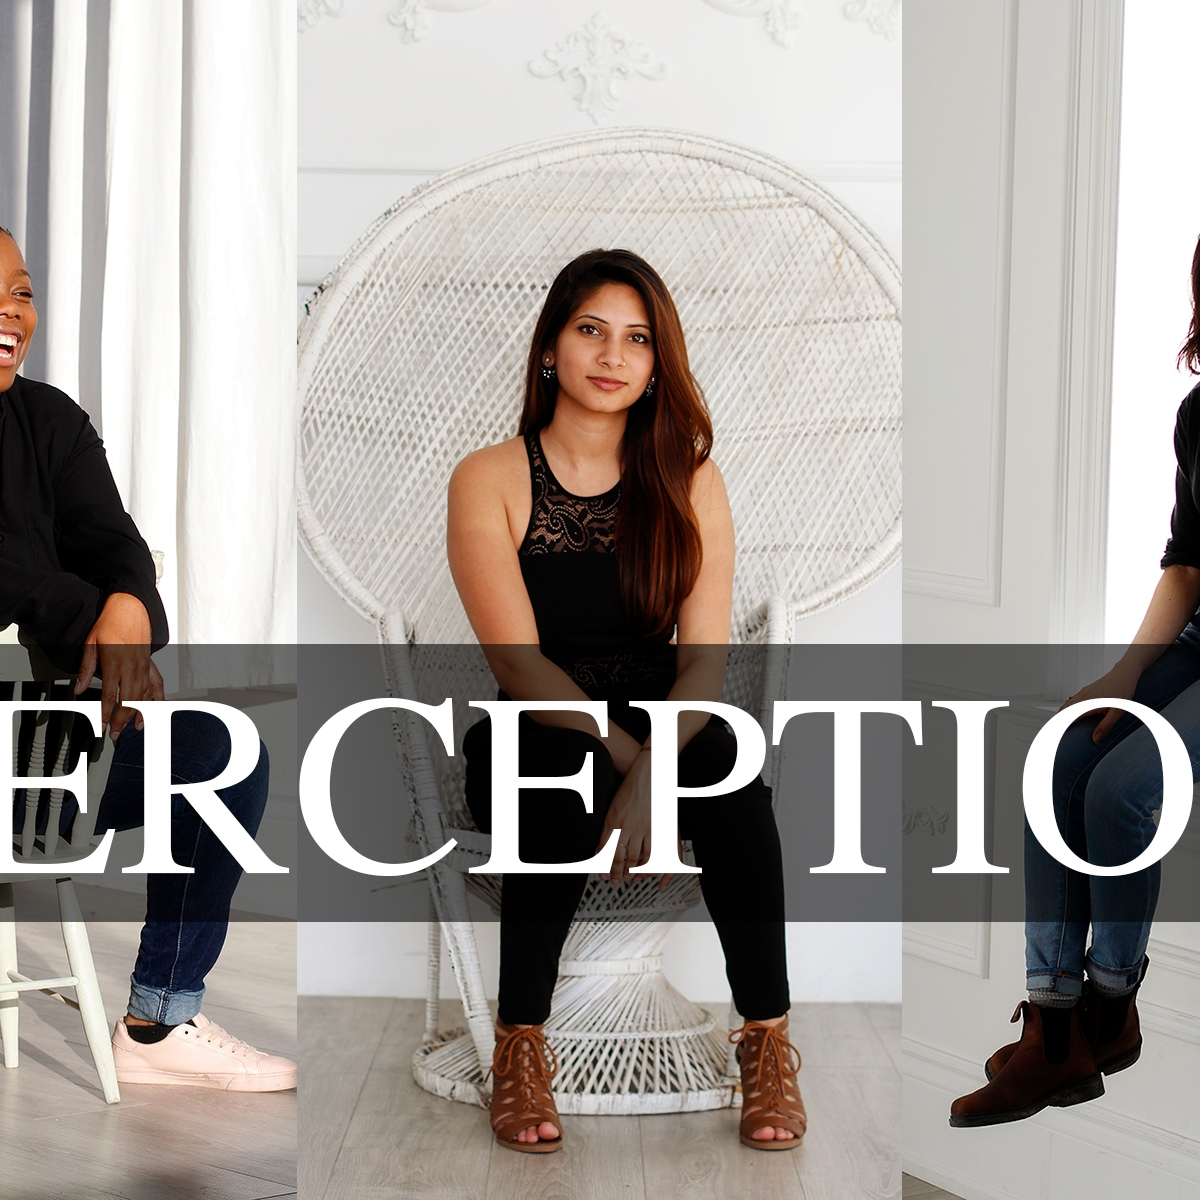 The Film Stars Project   Perception    July 26 – July 29, 2018